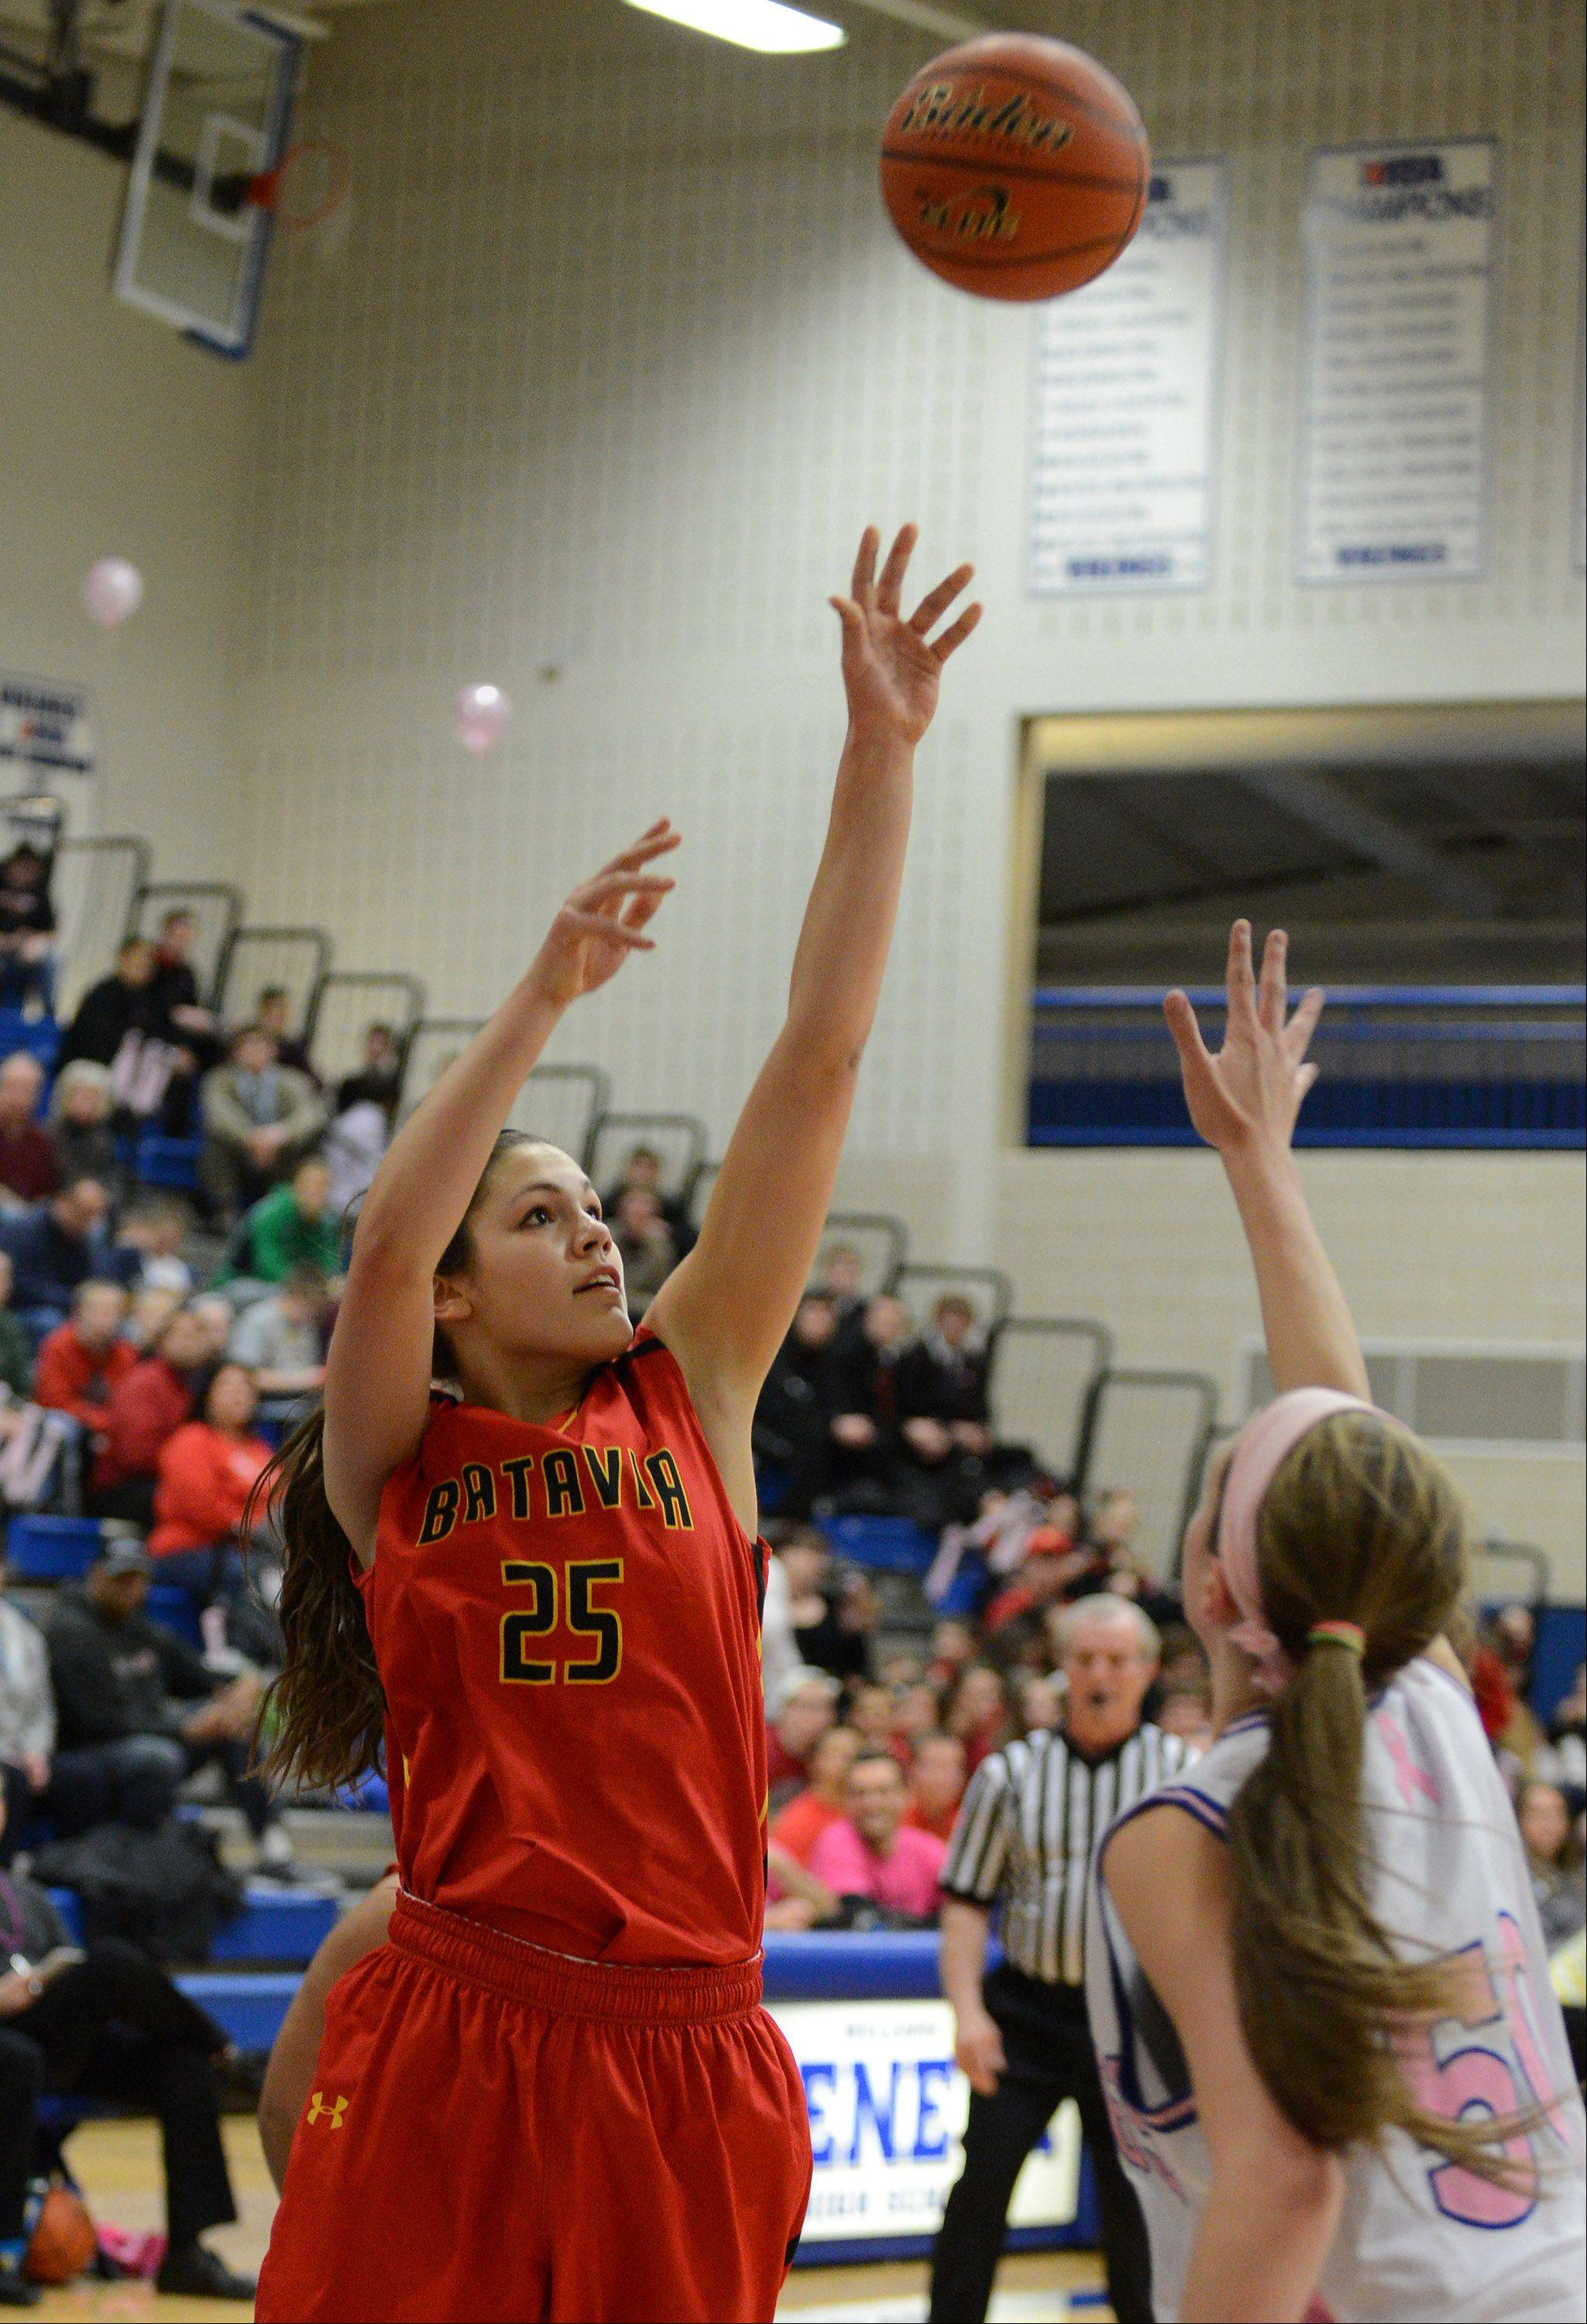 Images from the Batavia vs. Geneva girls basketball game Friday, January 17, 2014.